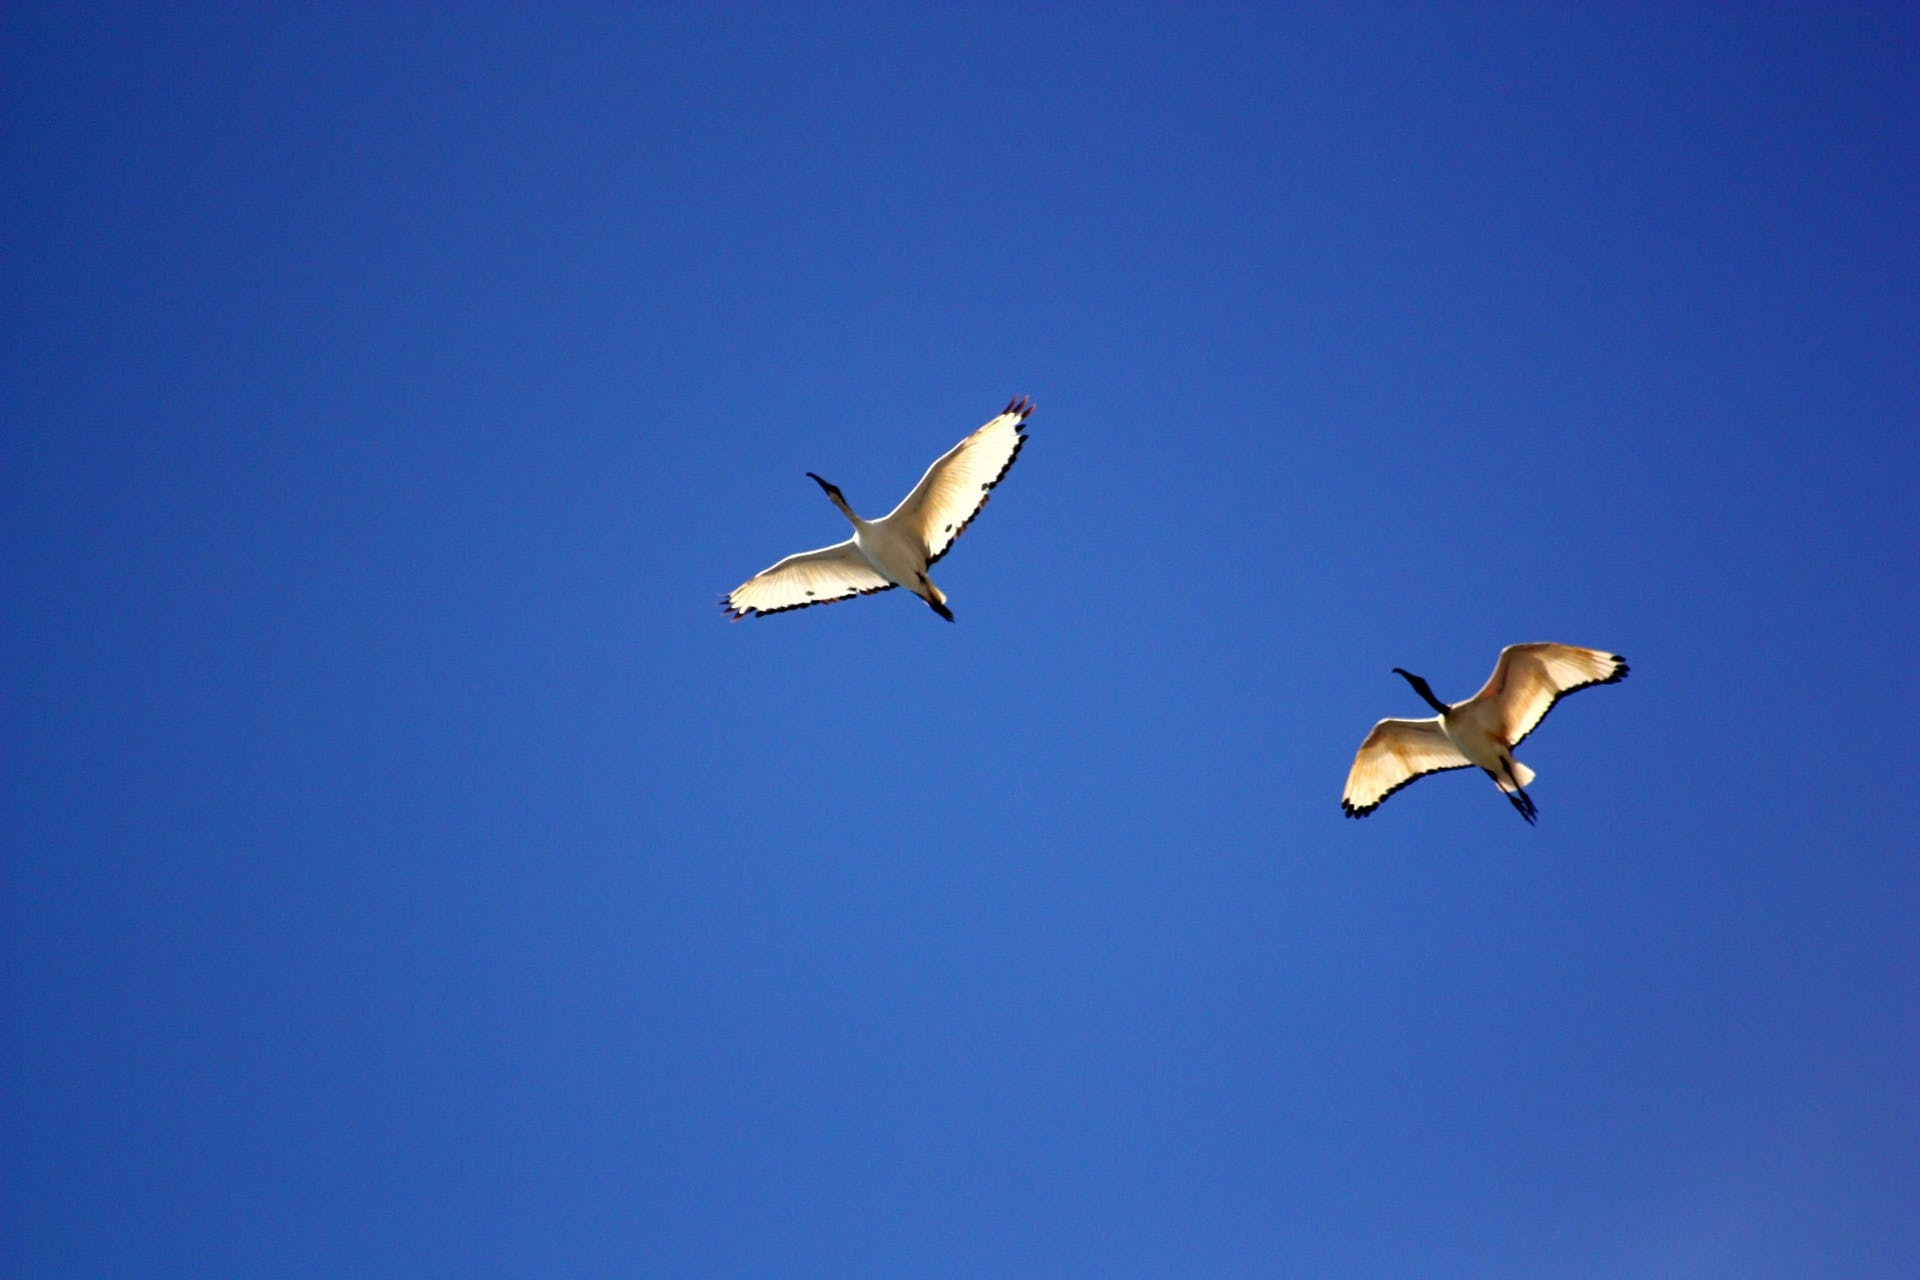 Sea Gull Flying Under Blue Sky during Daytime